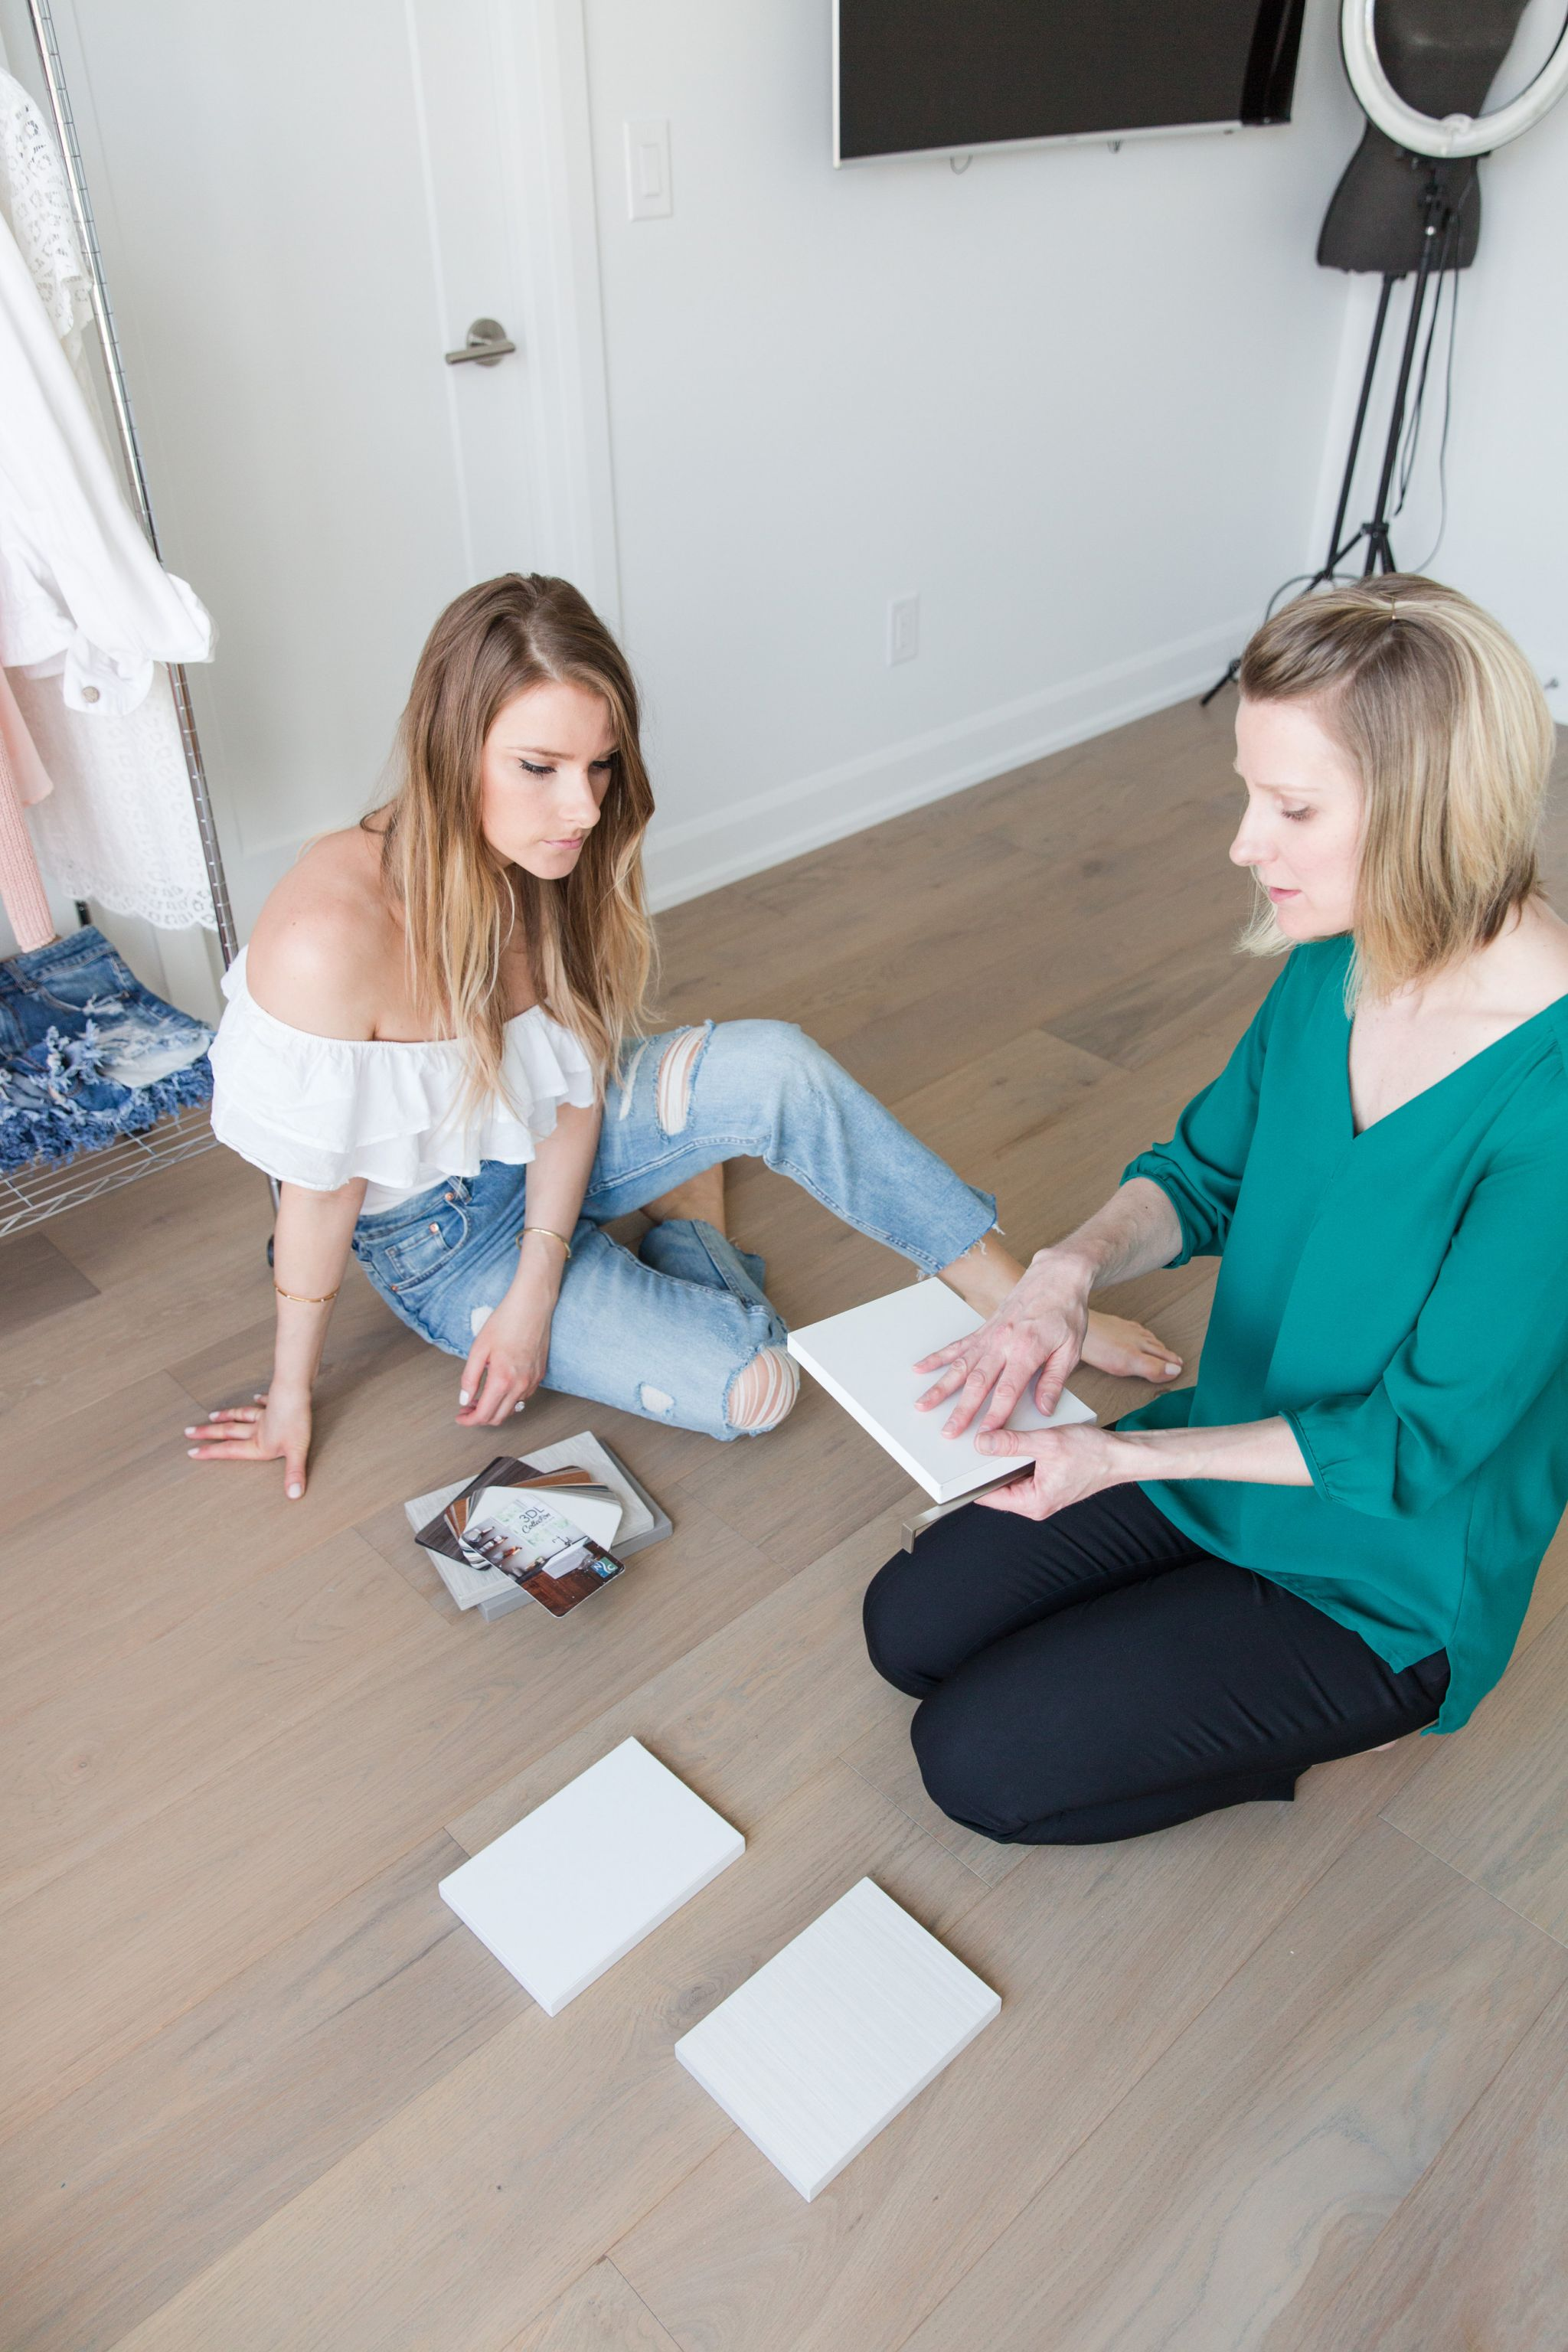 2 girls sitting on the floor, looking at closet samples and drawer handles